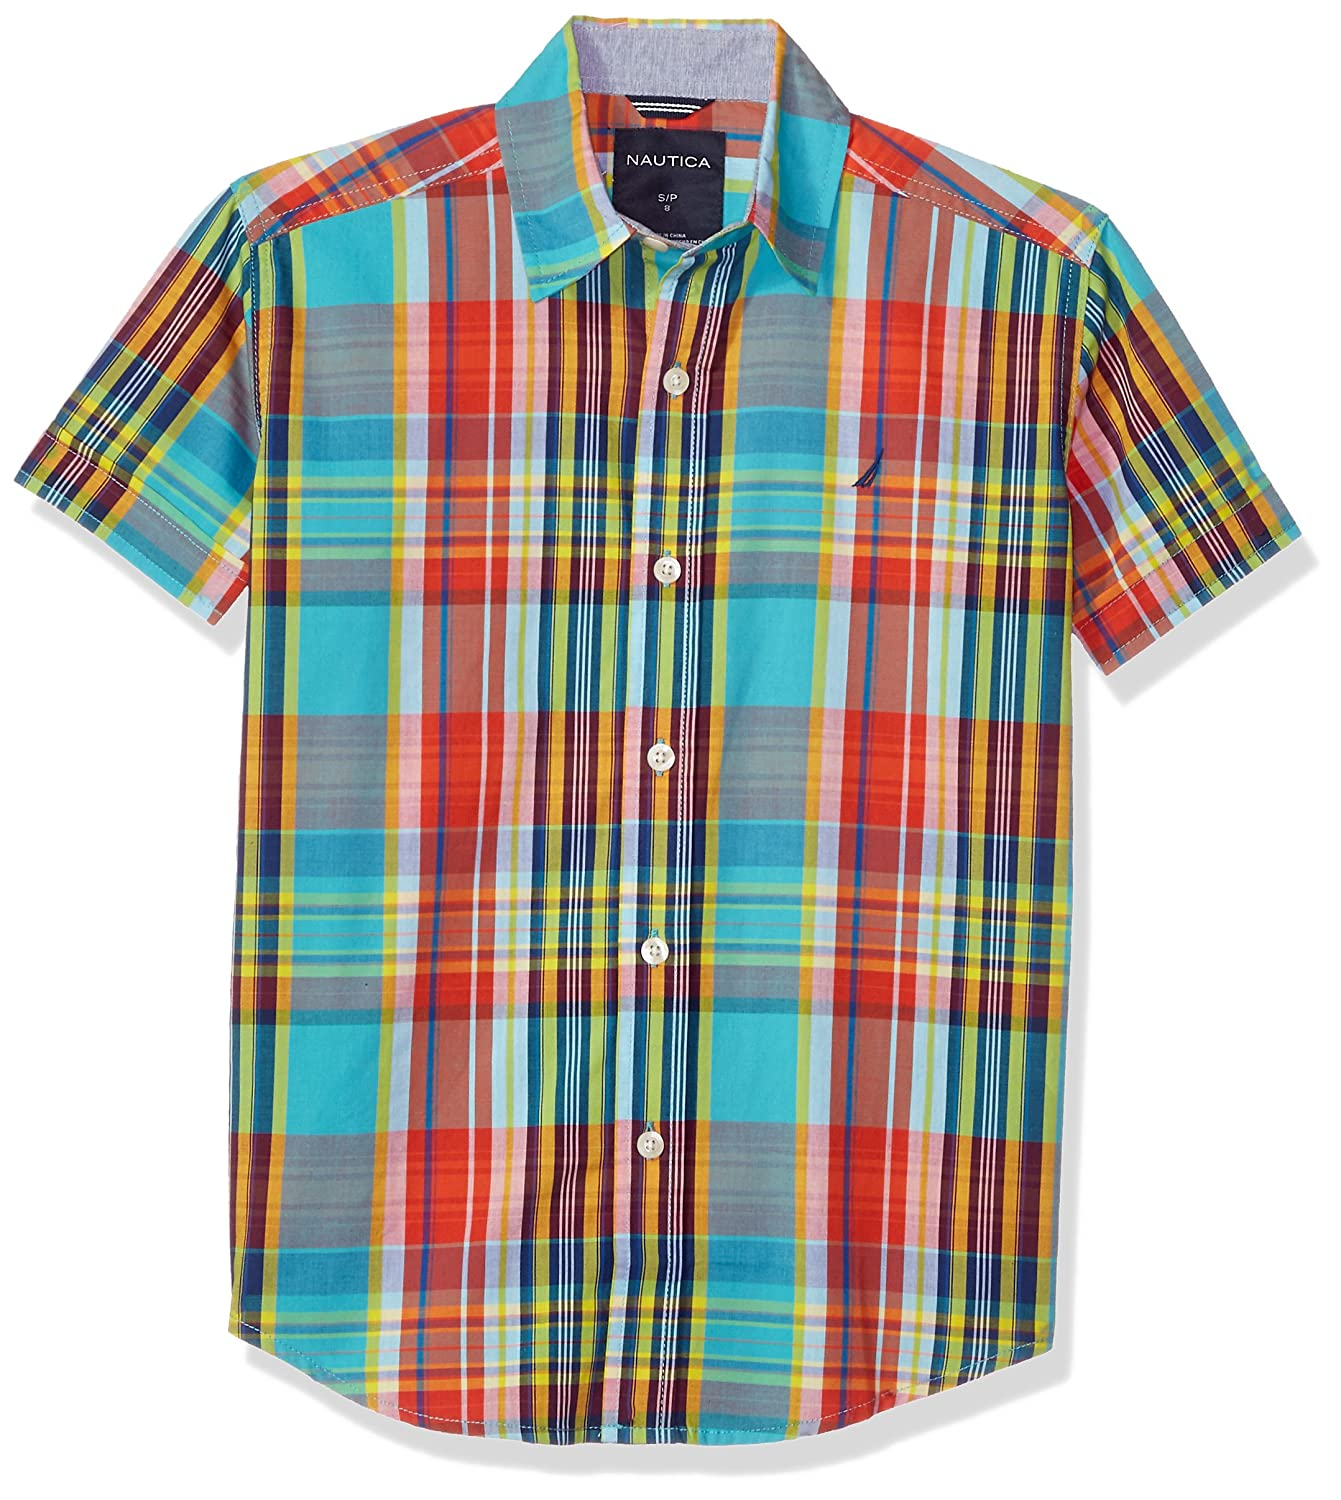 Nautica Boys Short Sleeve Plaid Button Down Shirt with Stretch